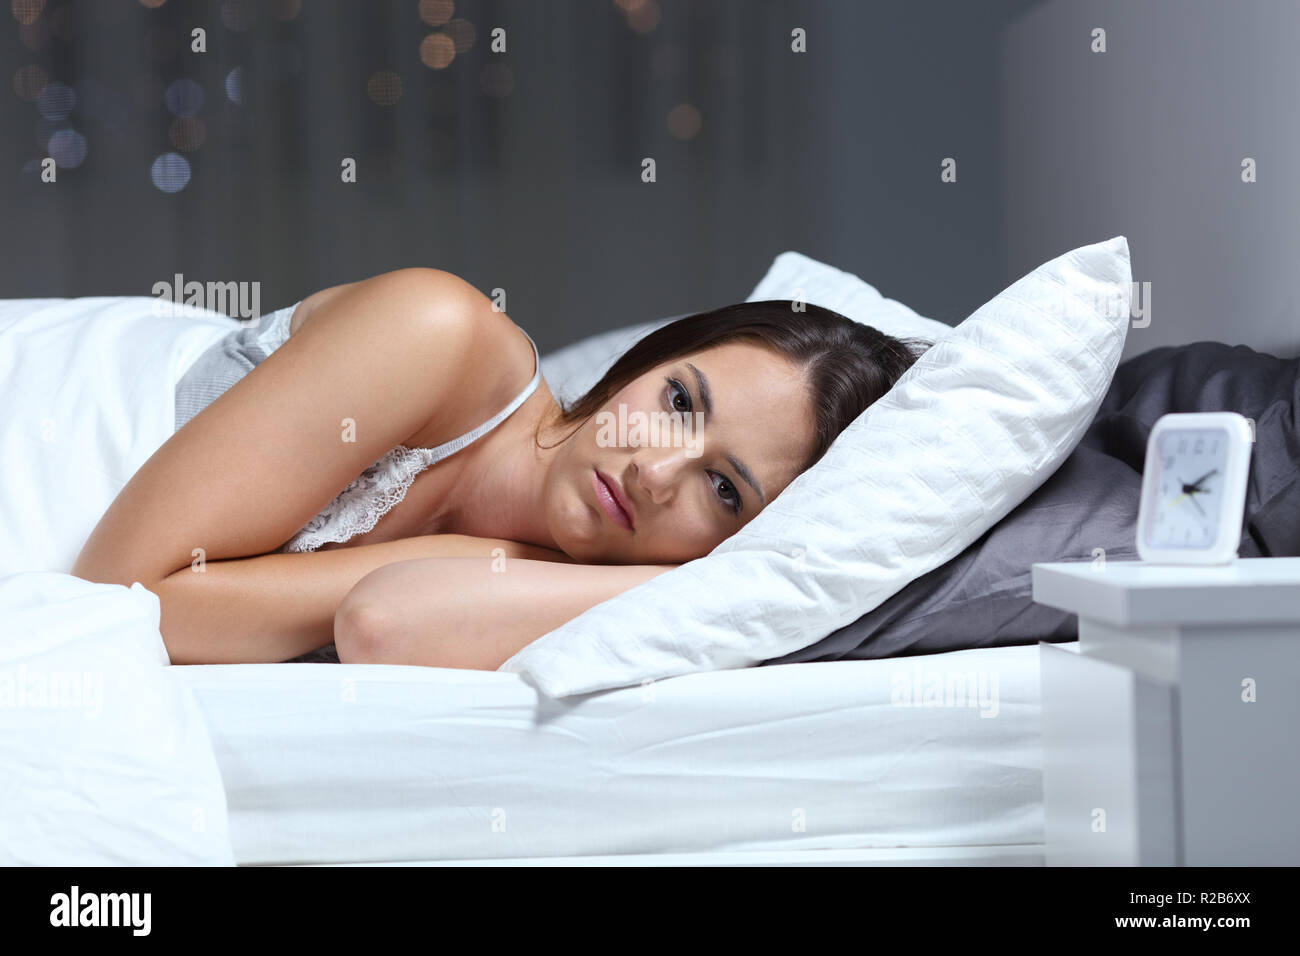 Angry insomniac woman looking at camera lying on a bed in the night at home - Stock Image